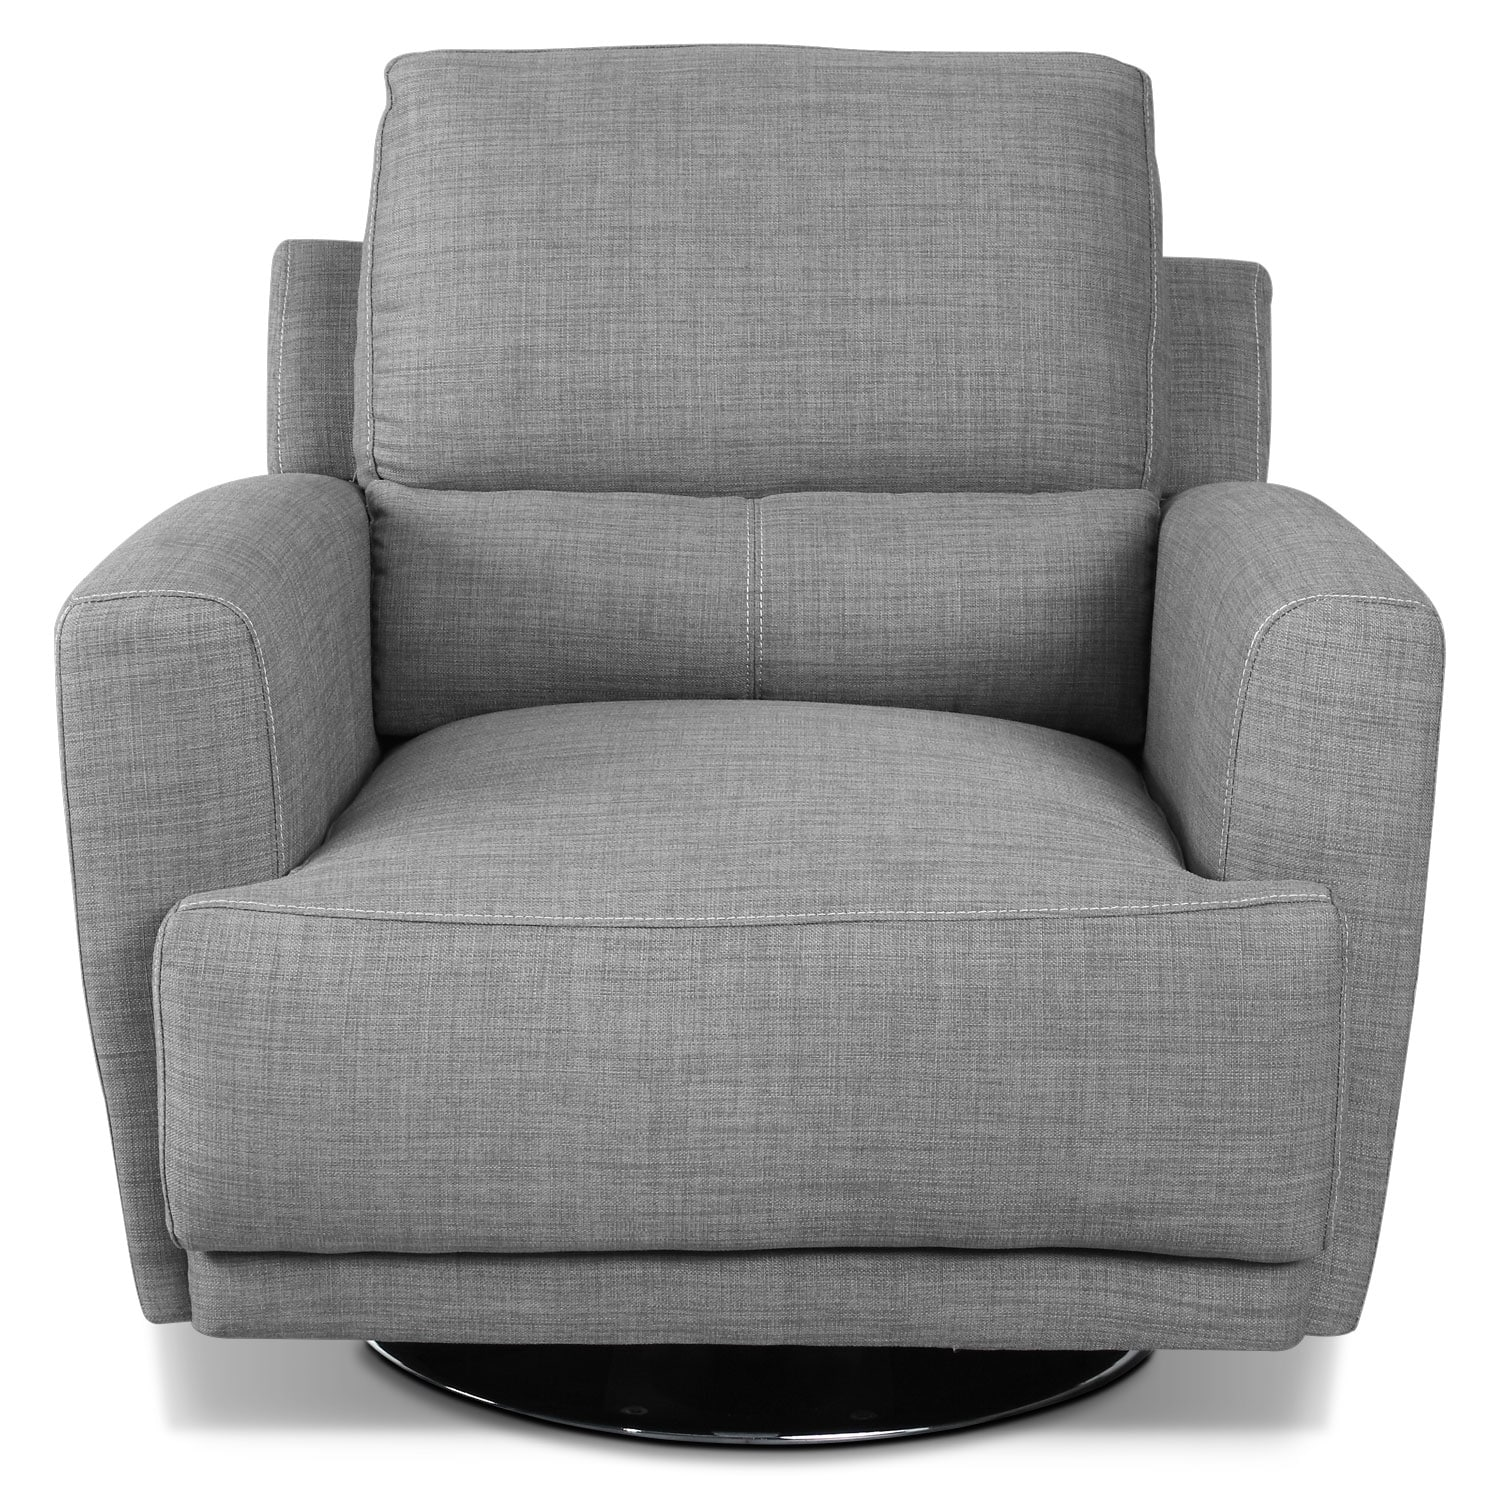 Emilee Fabric Swivel Chair - Ash